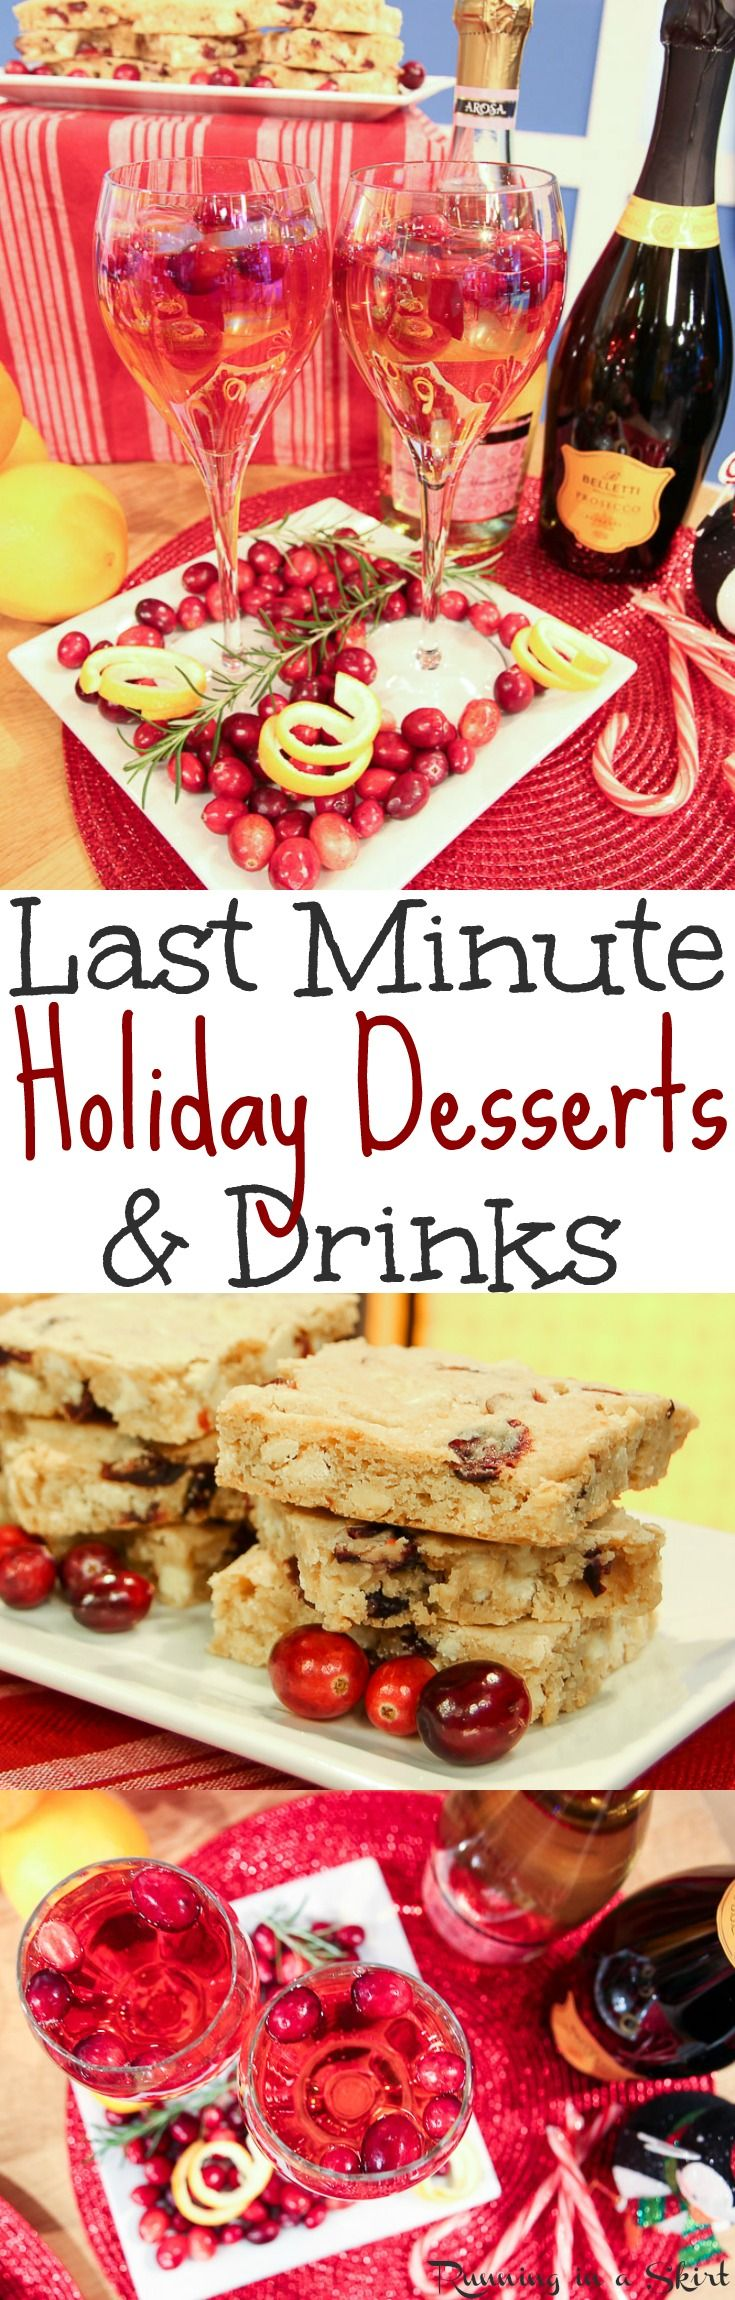 Last Minute Christmas Desserts & Drinks recipes for the holidays. Budget friendly, fast, simple and